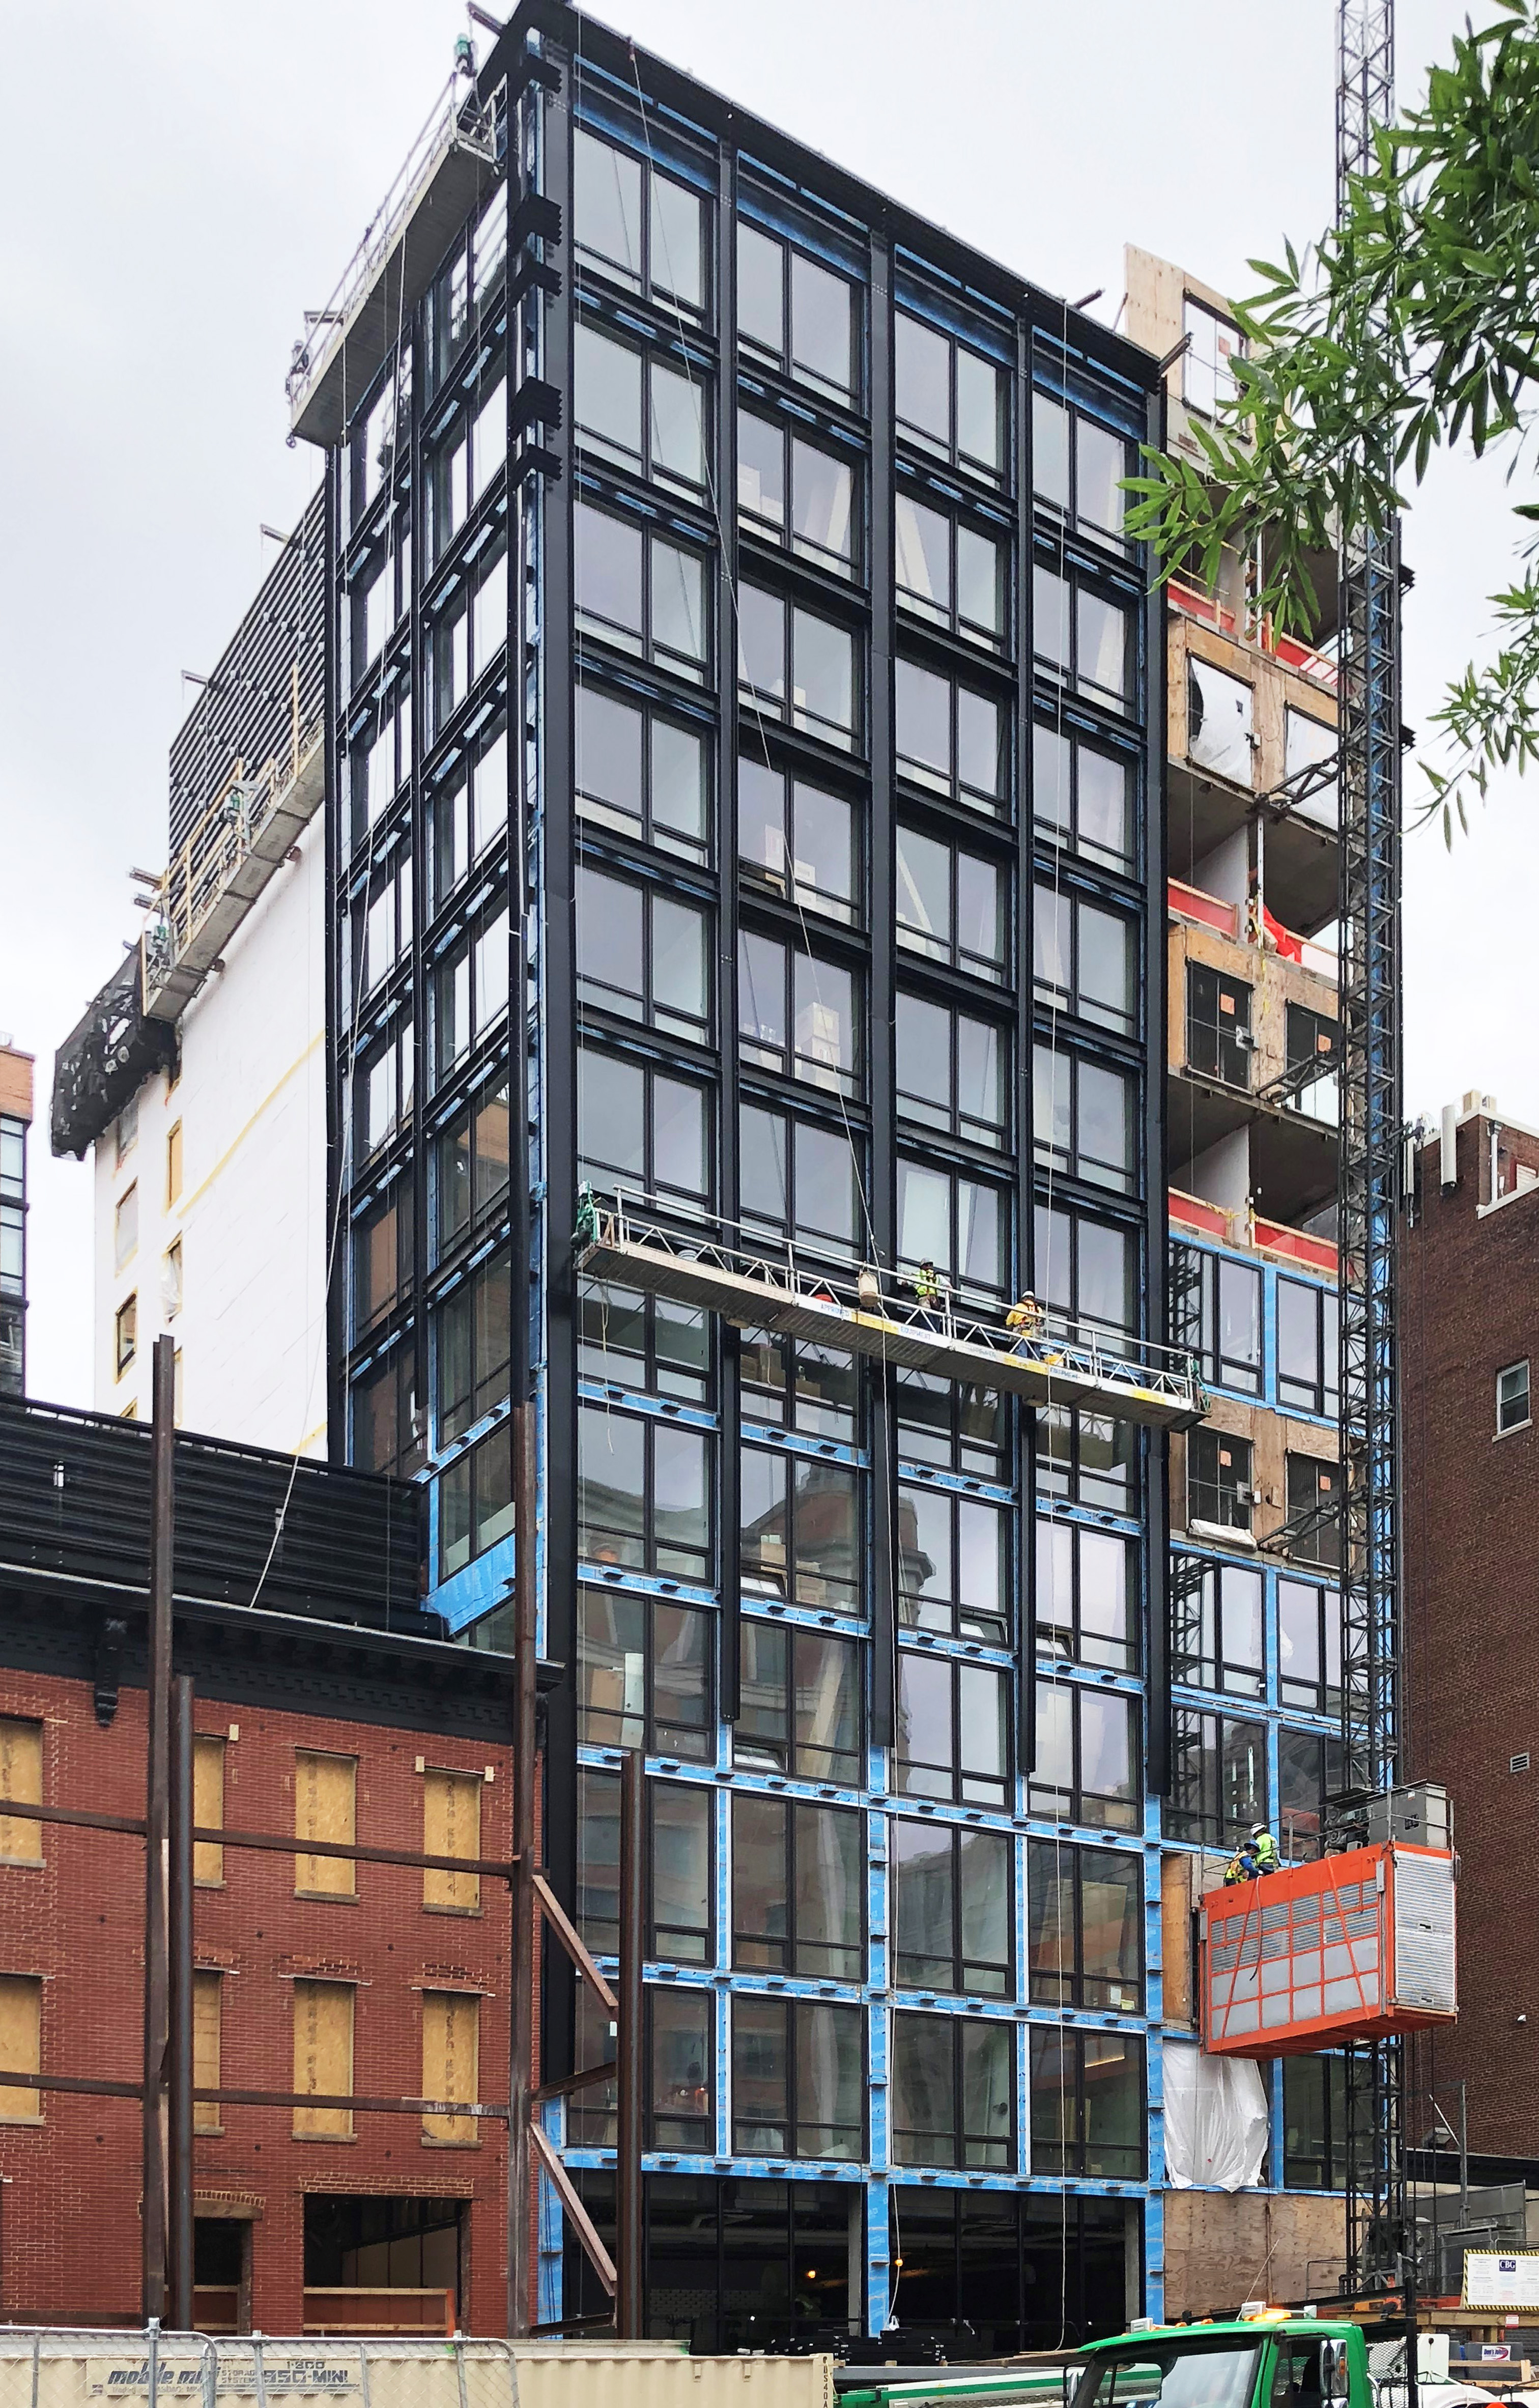 The Moxy Hotel by Marriott in-progress